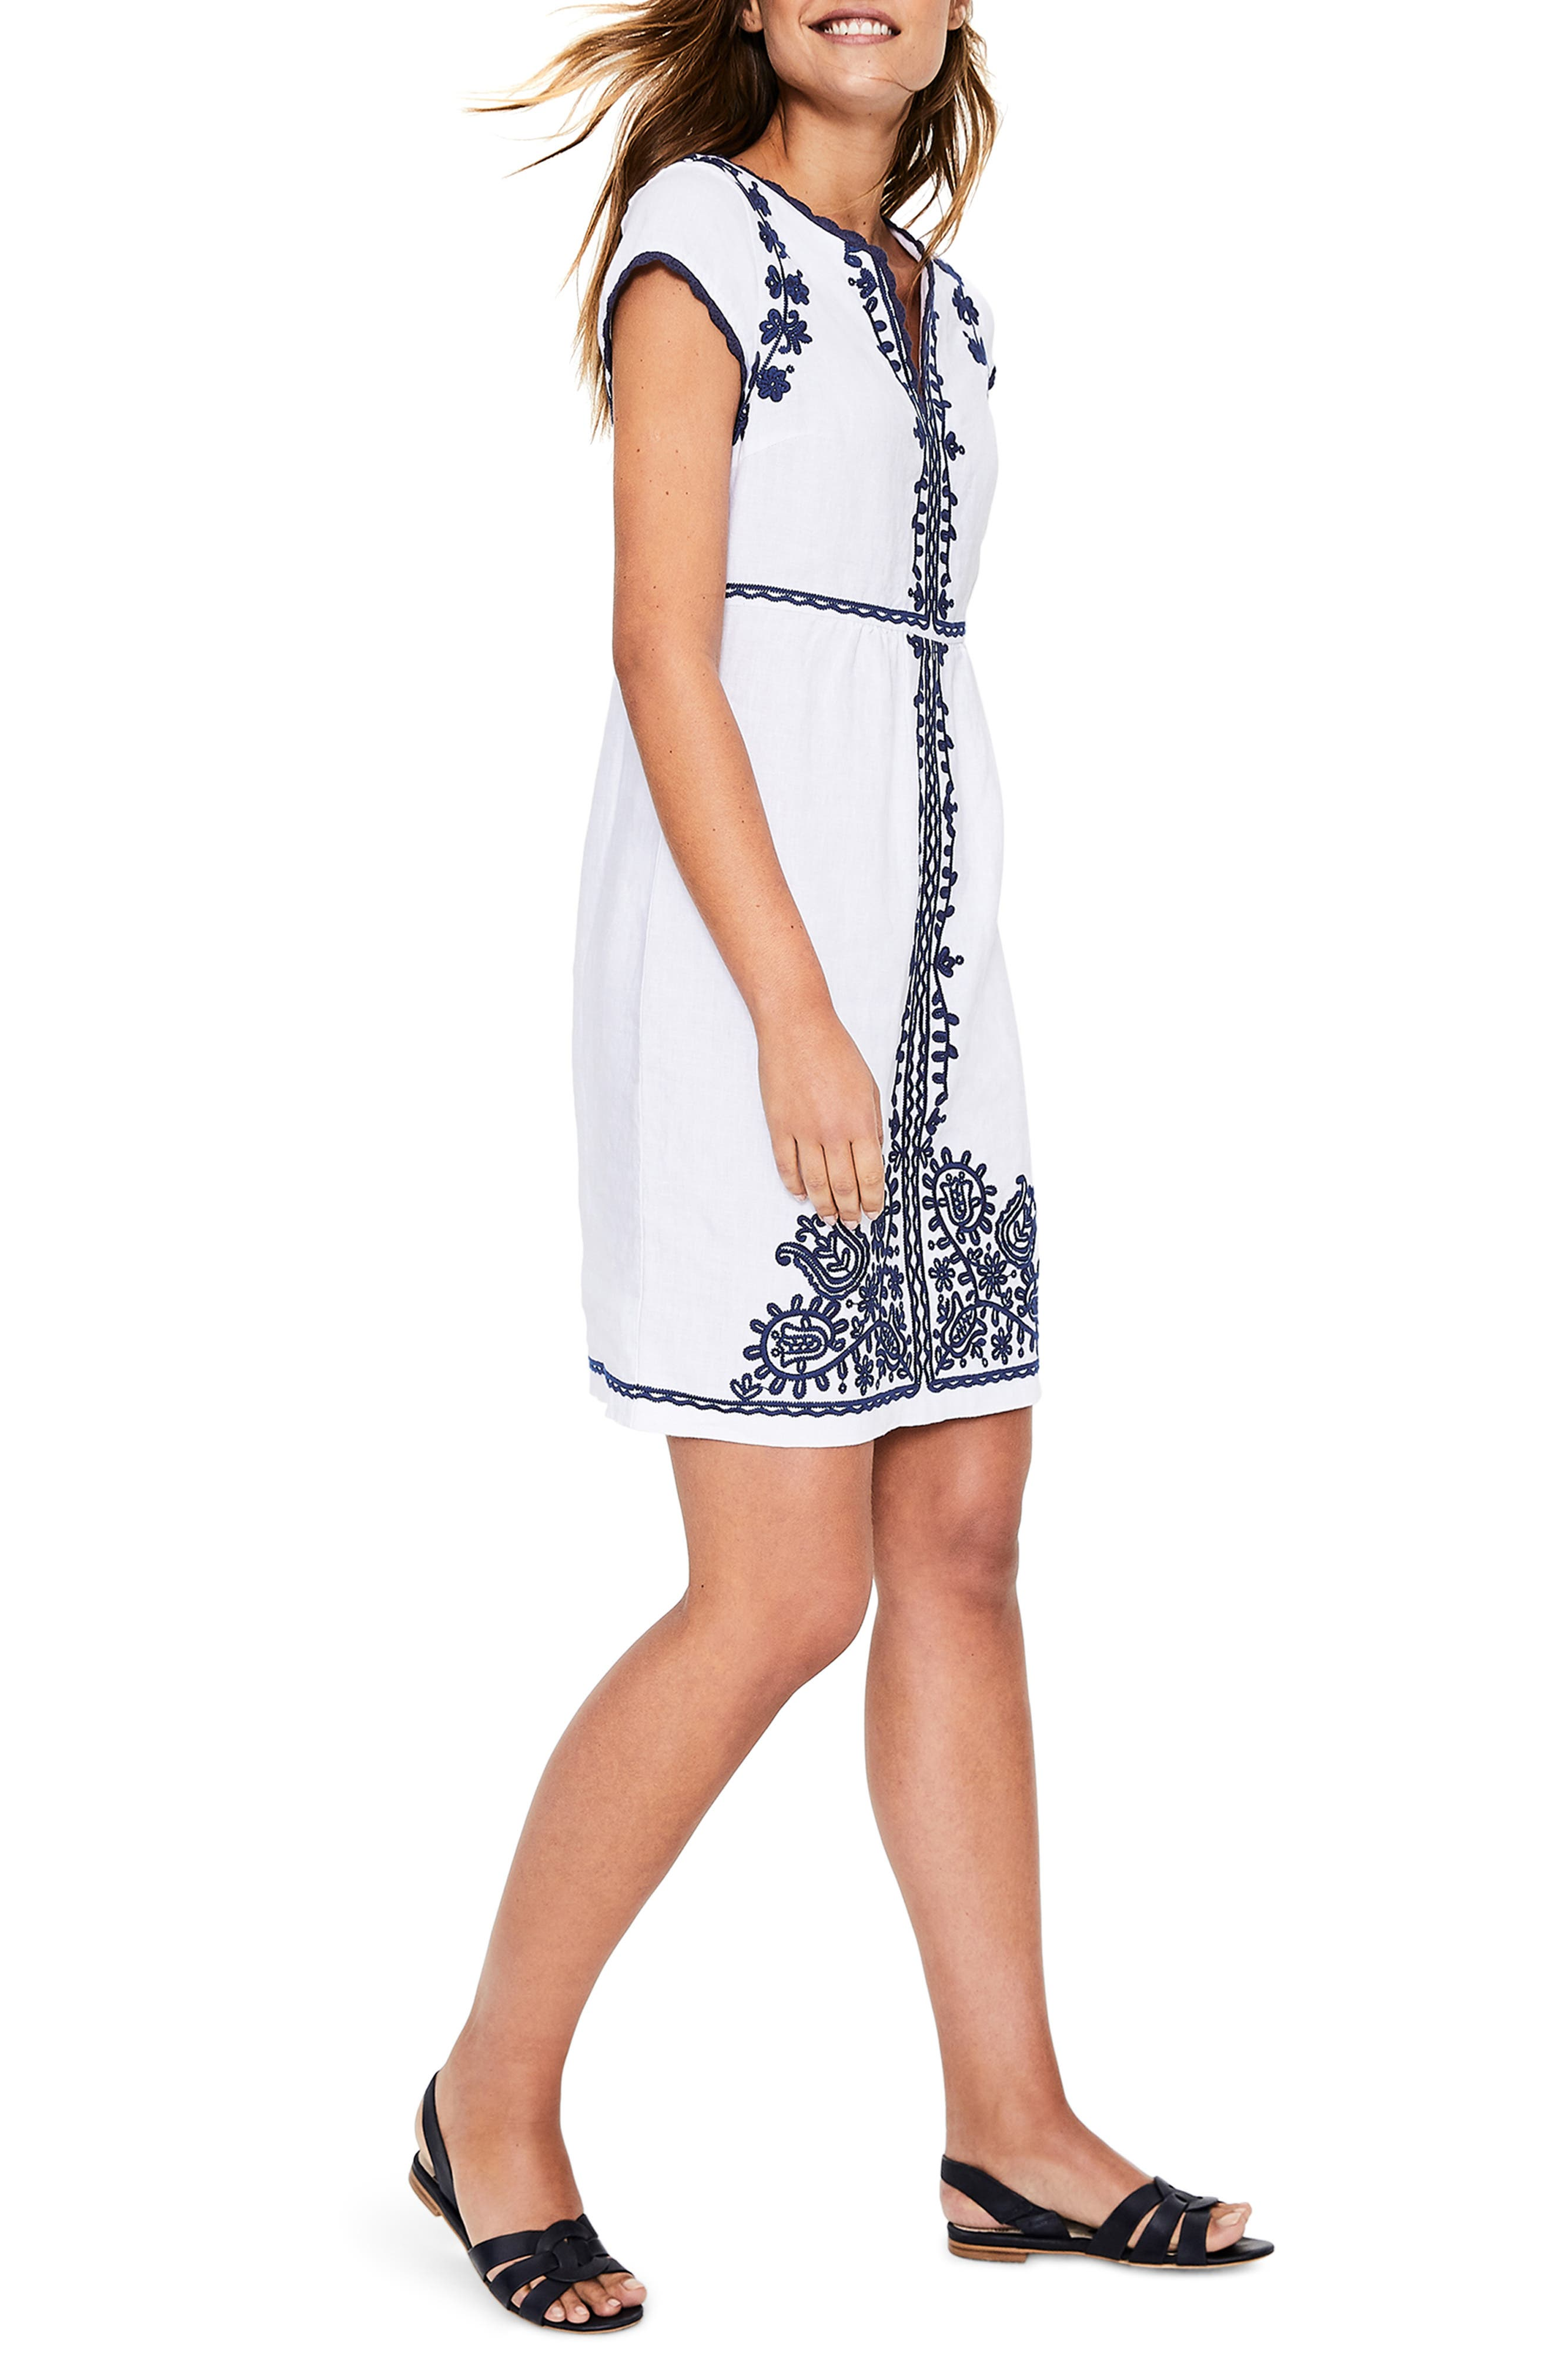 Notched Neck Embroidered Shift Dress,                             Alternate thumbnail 3, color,                             WHITE AND BLUE EMBROIDERY